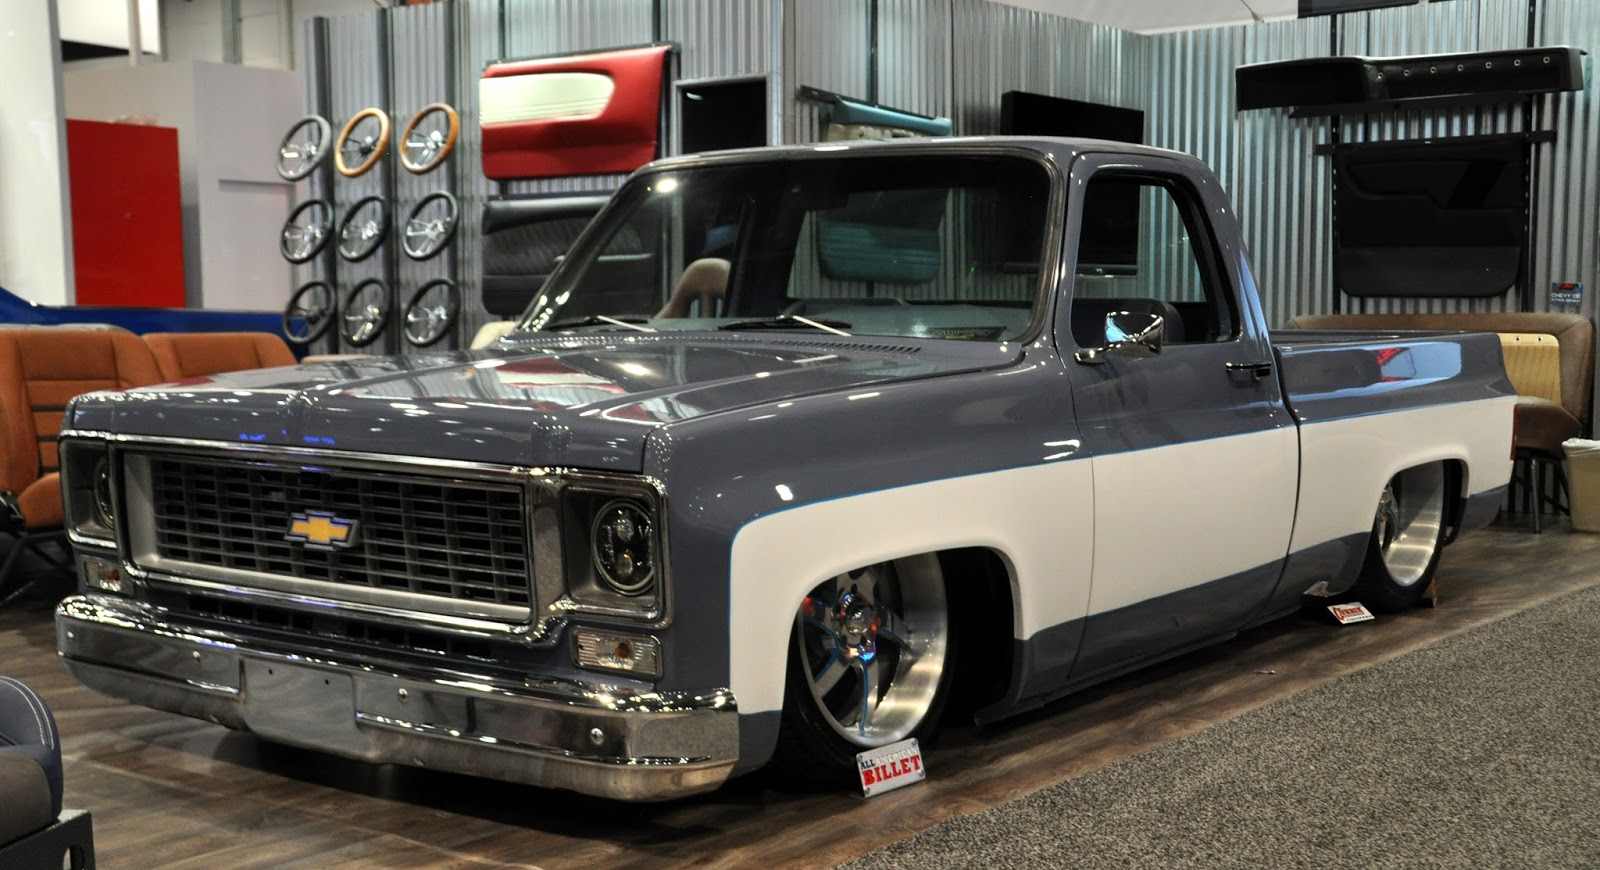 Old Chevy Truck Old Chevrolet Truck. Lifted Chevrolet Silverado ...